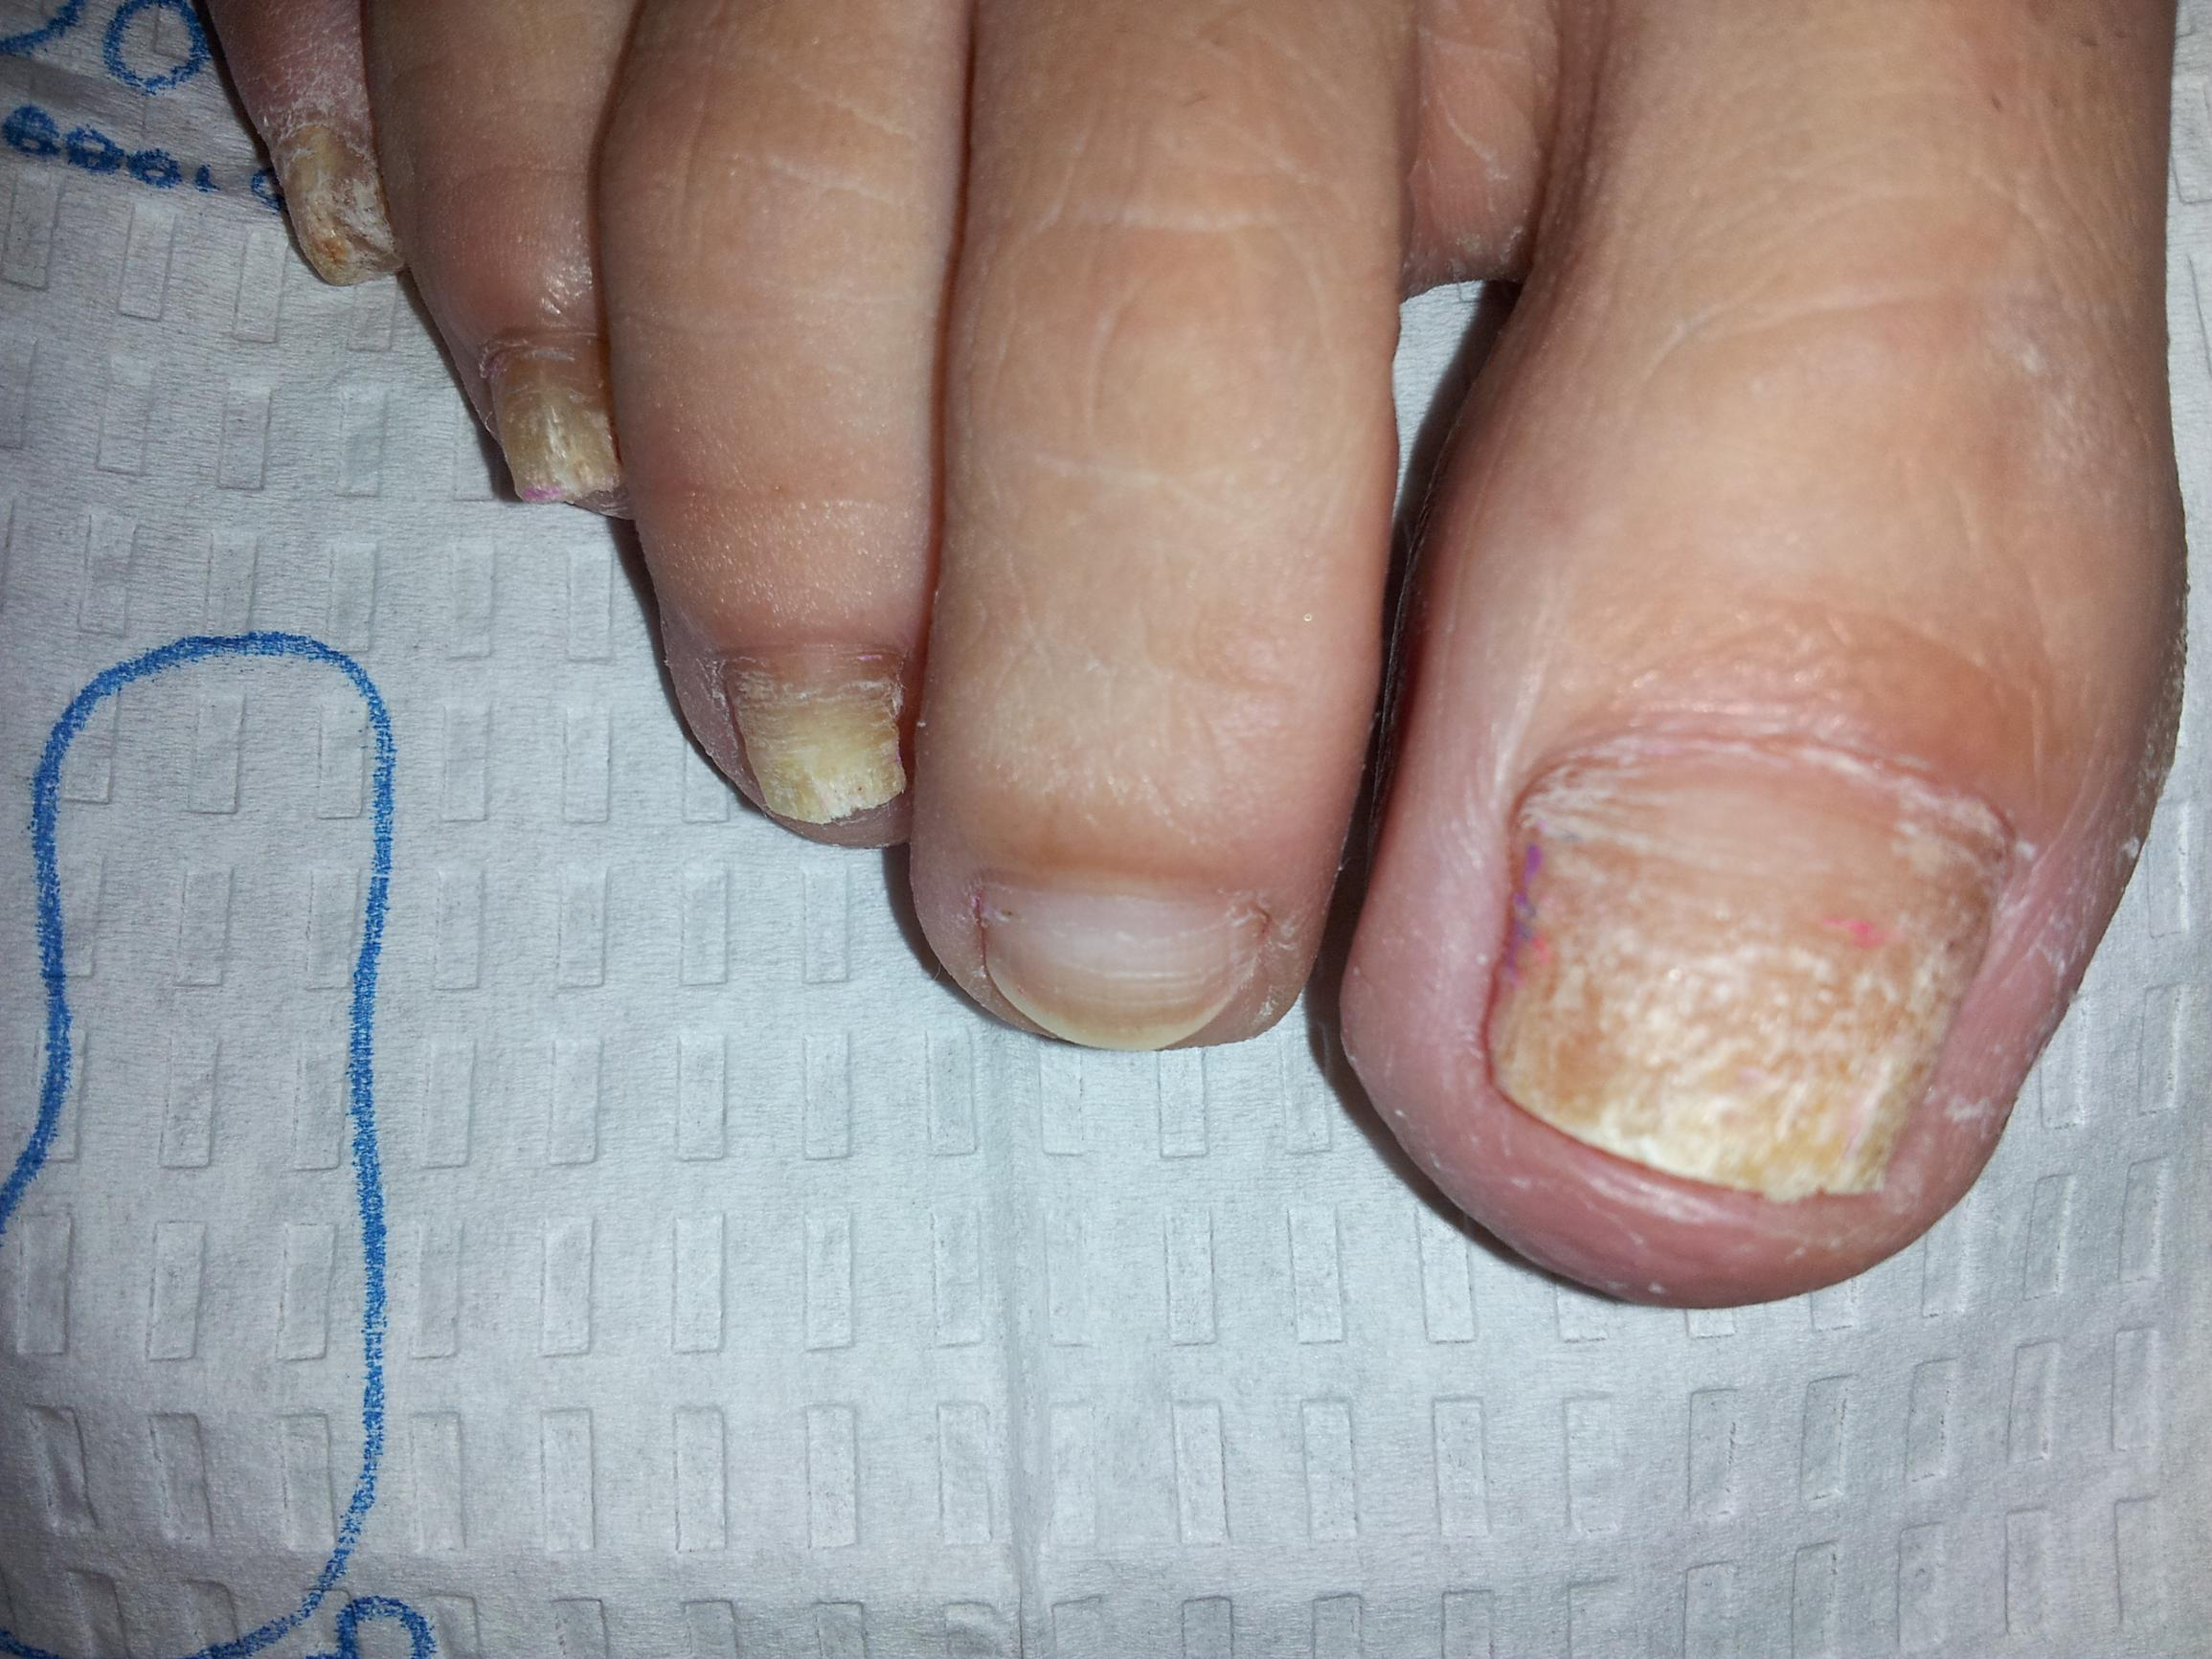 Laser Nail Fungus Removal, Laser Nail Fungus Treatments, Nail Fungus Treatment, laser nail, laser fungus westminster, nail infection, nail disease, Medication for nail fungus, Laser toenail, laser fingernail, fingernail infection, laser nail fungus westminster